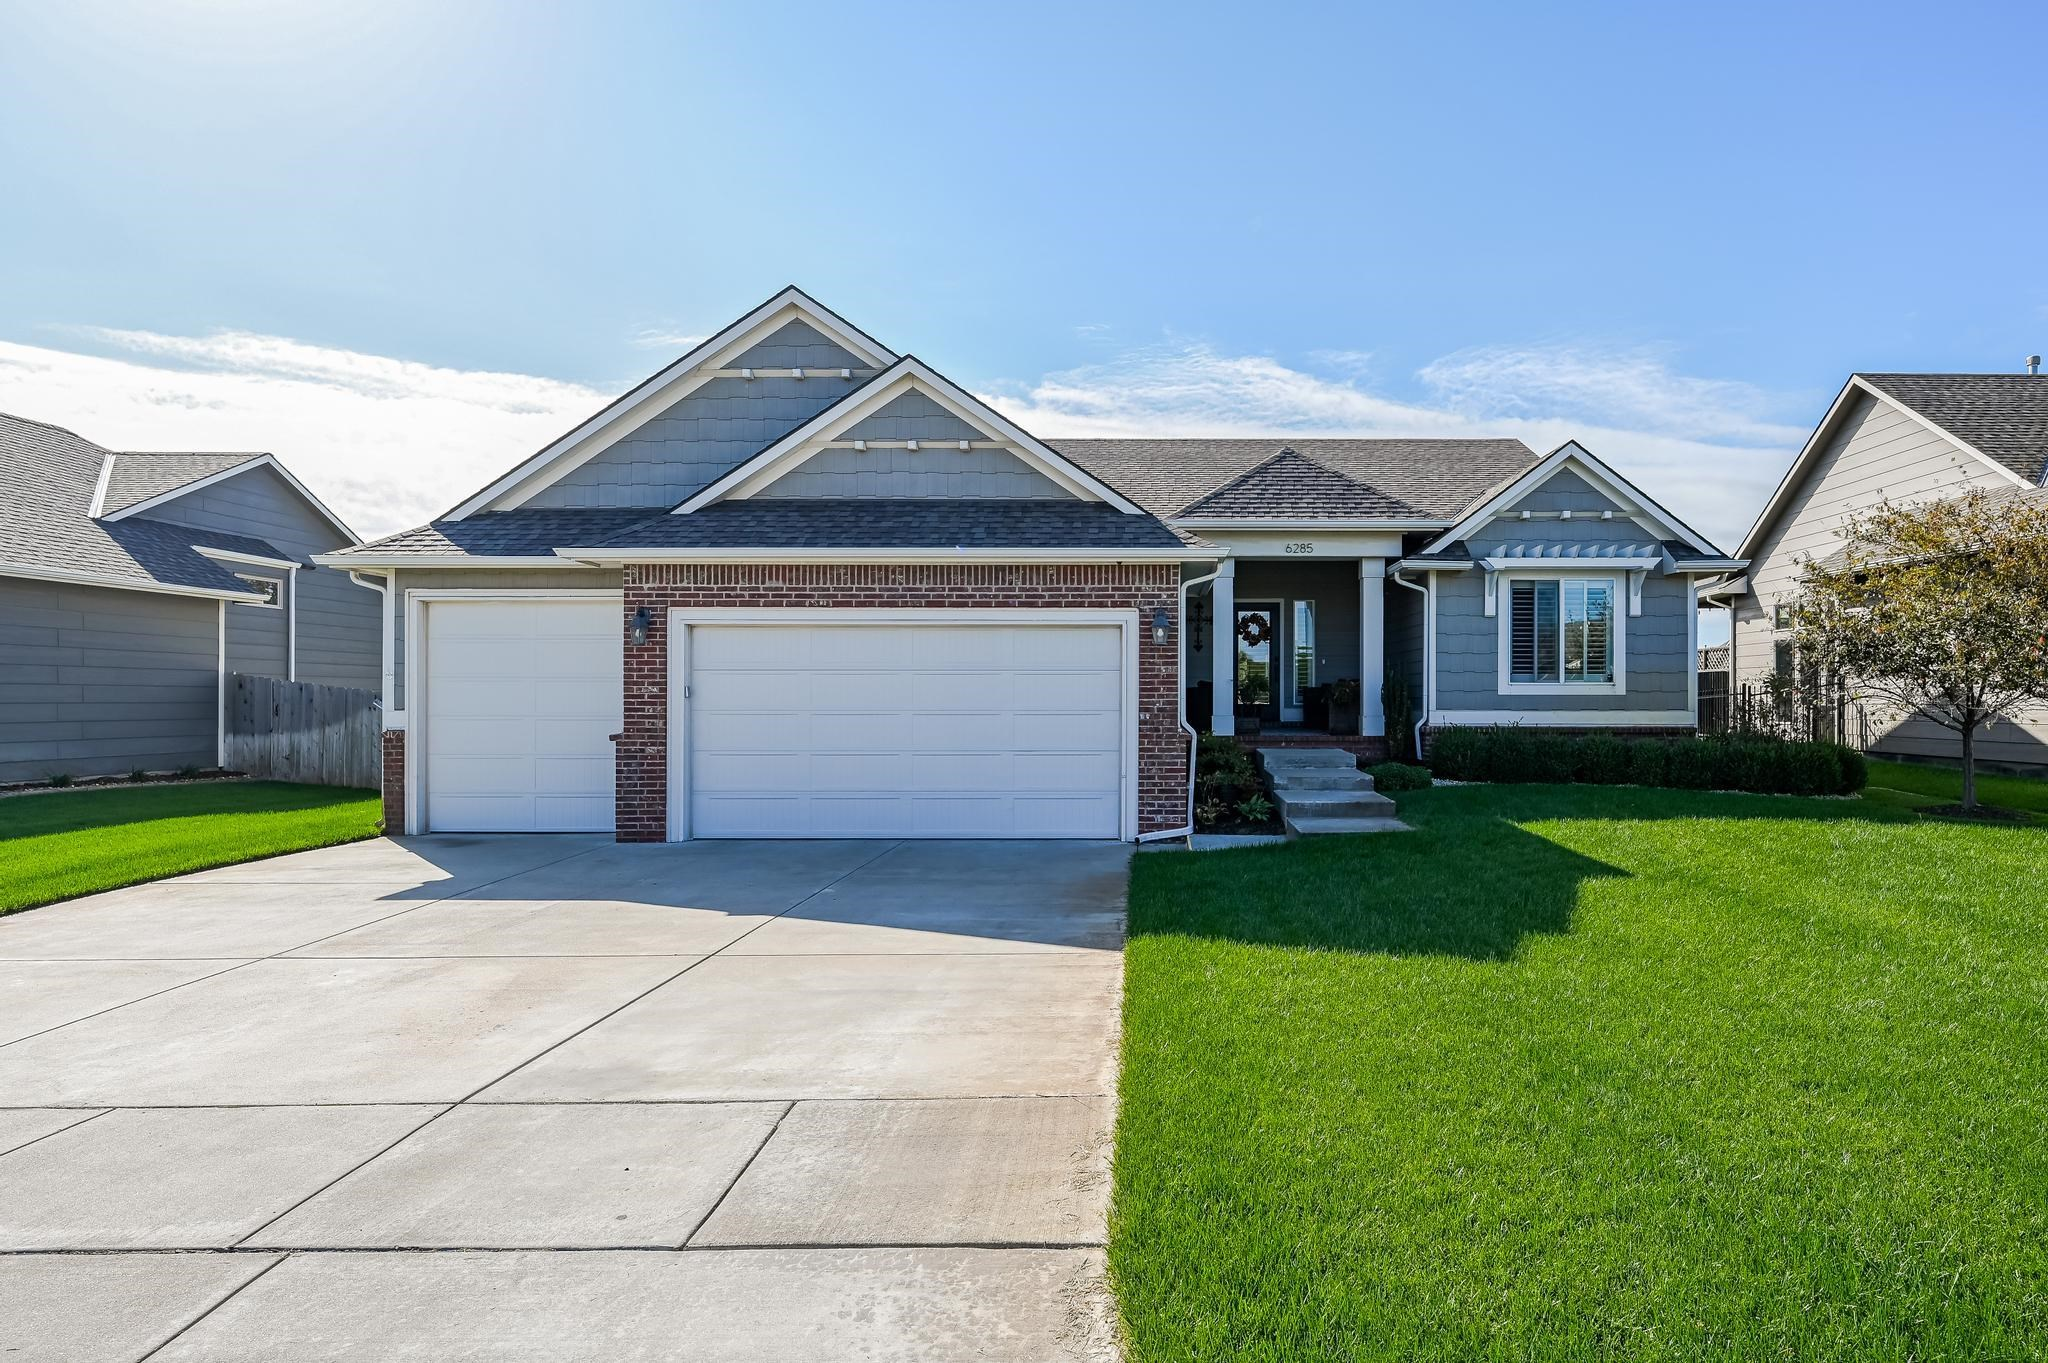 Welcome to this impressive home located in the highly desirable Edge Water subdivision. This is a 3